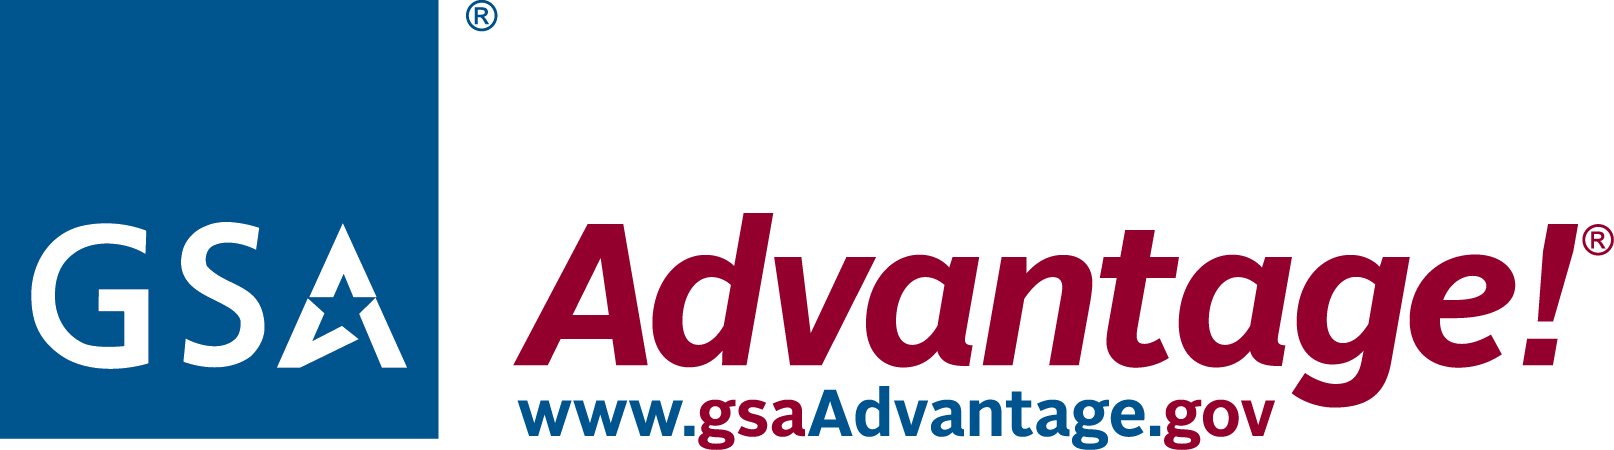 GSA Advantage full color with URL